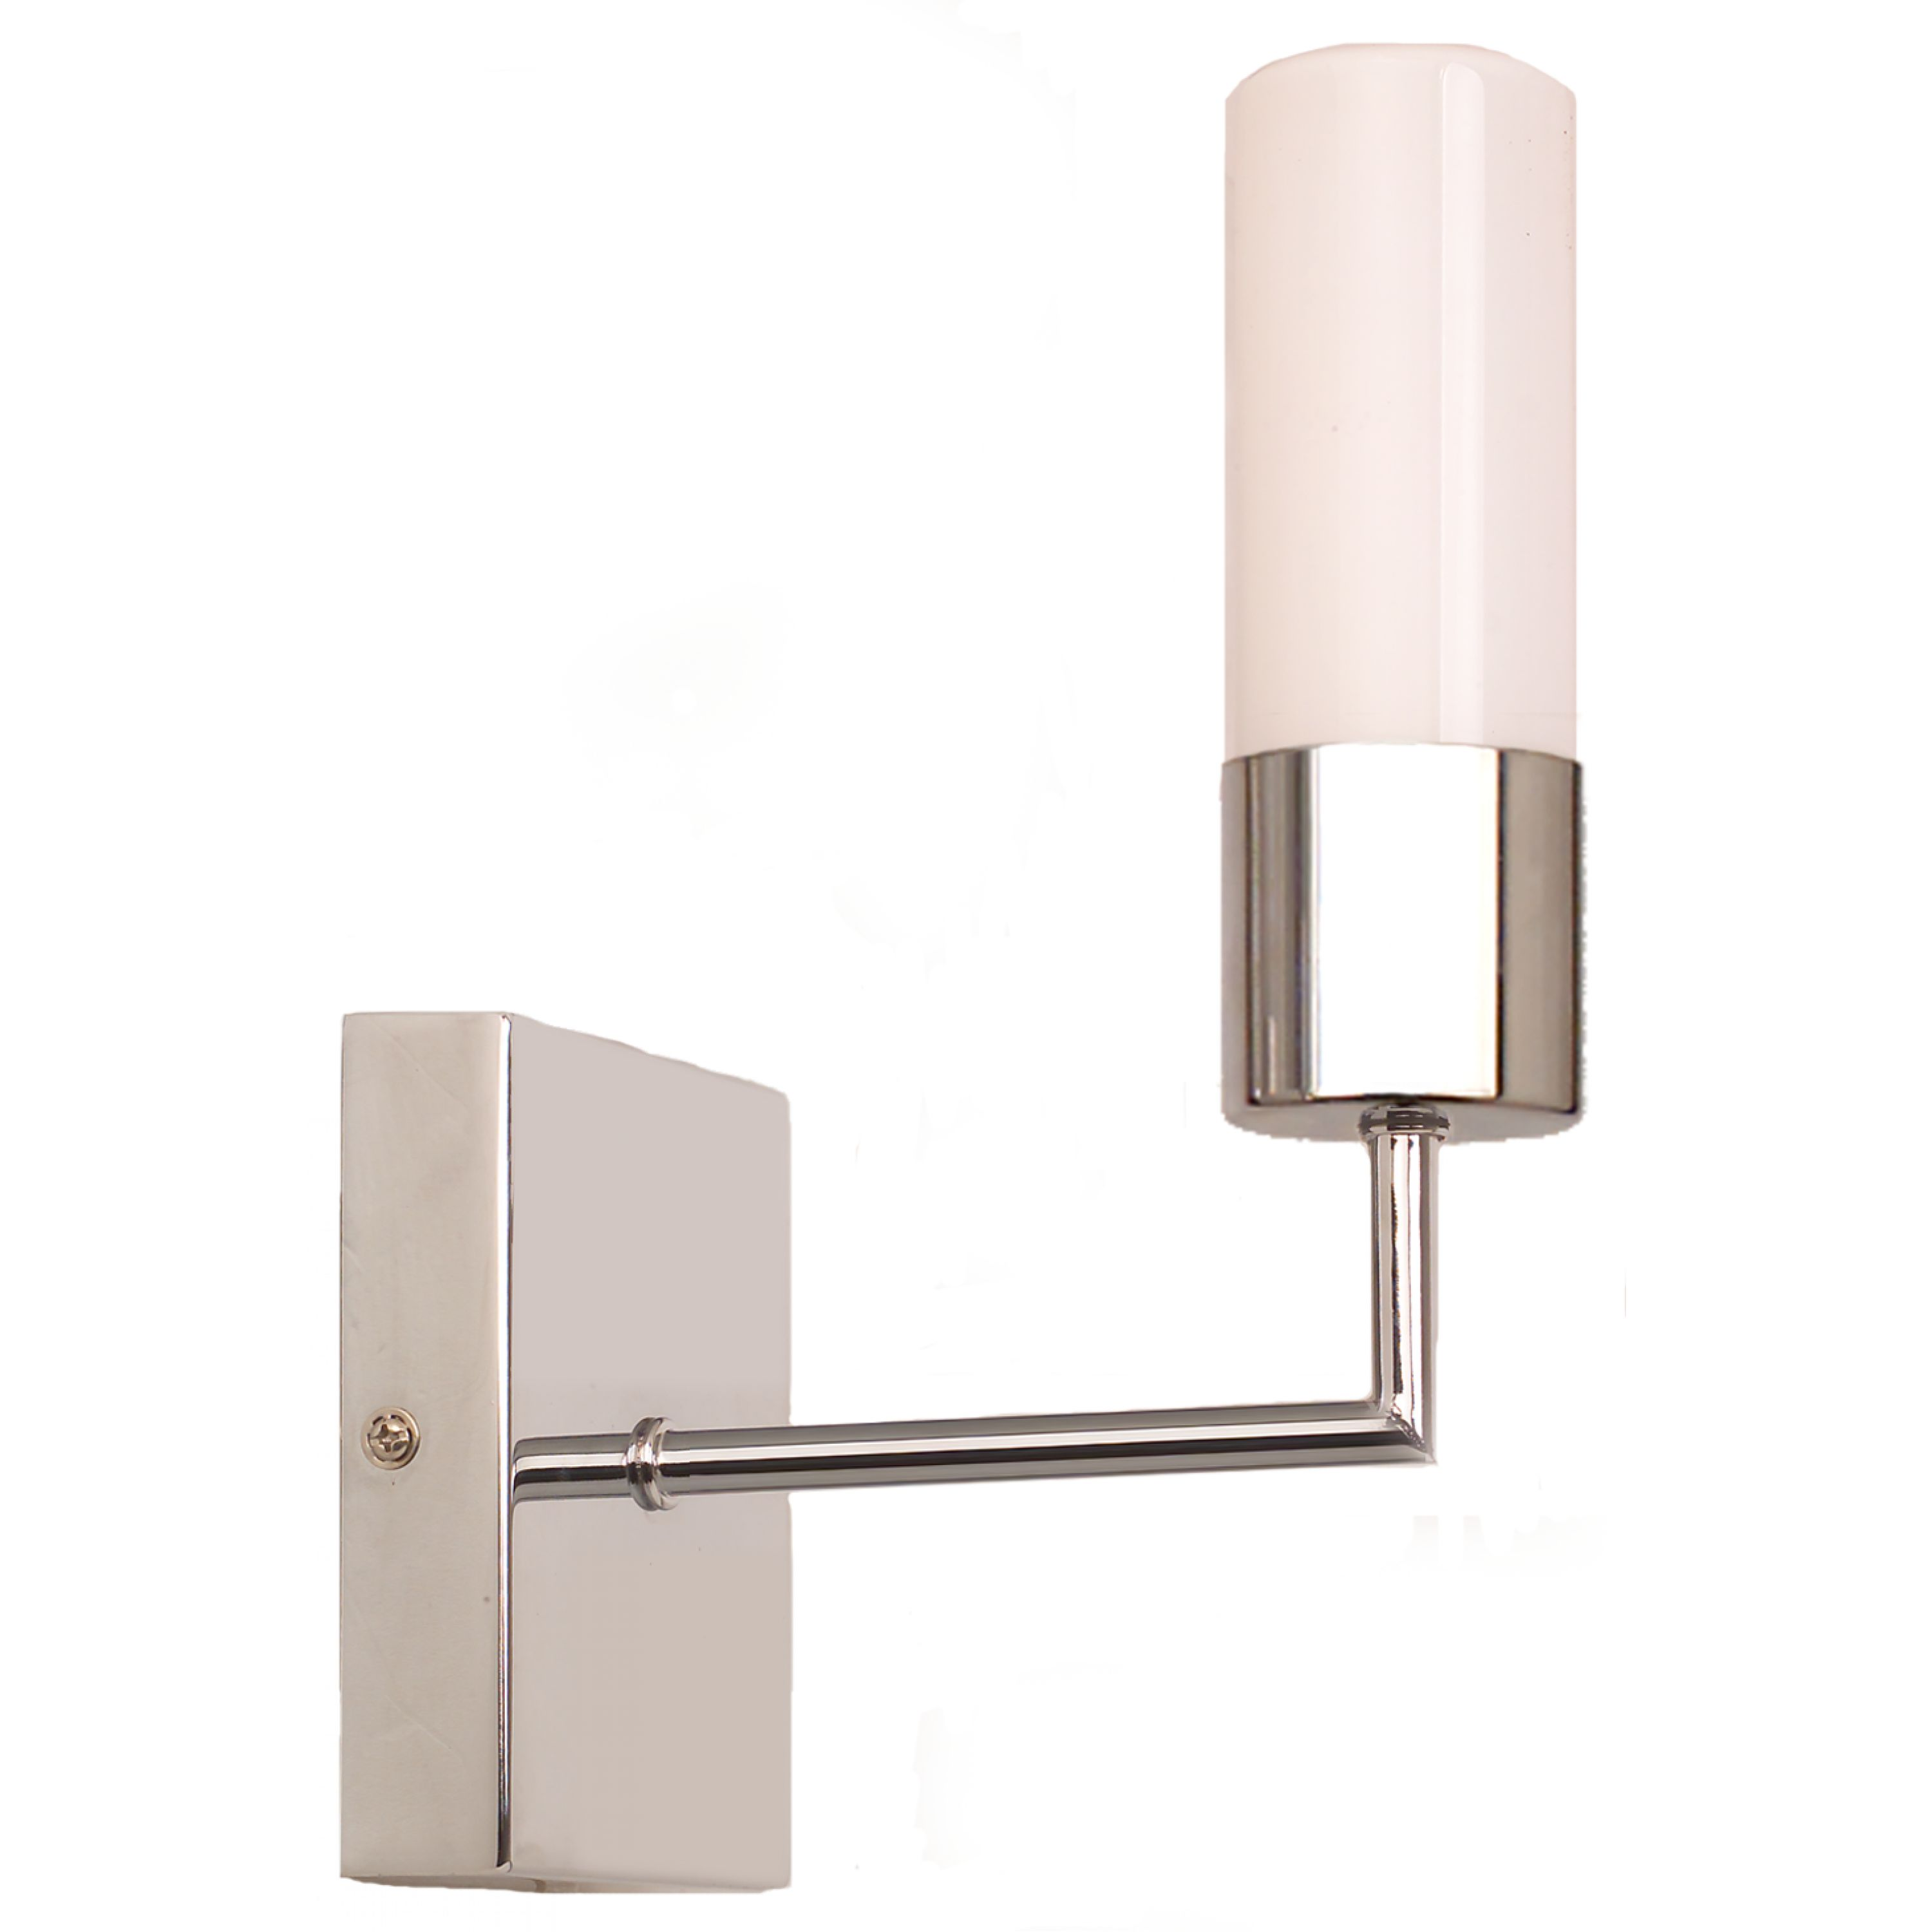 Tilburg Wall Light (Polished nickel)